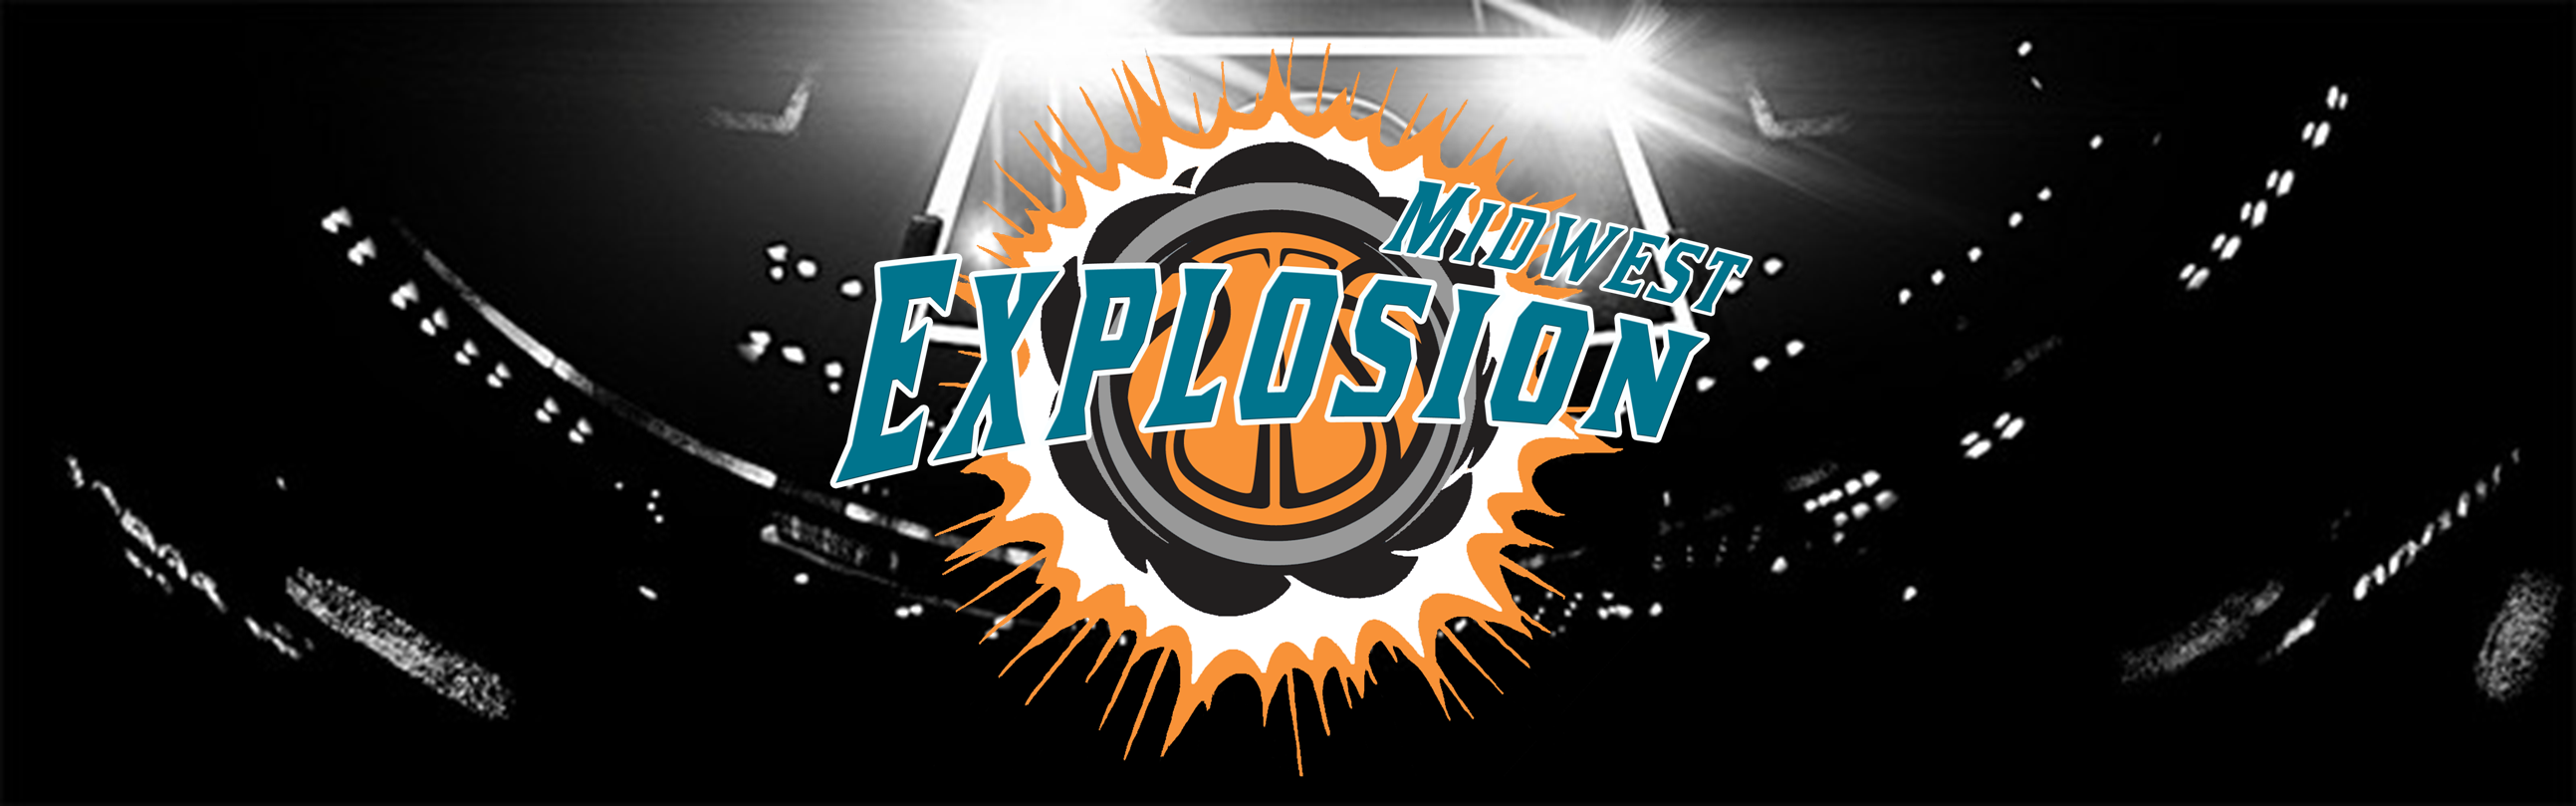 Midwest Explosion Header